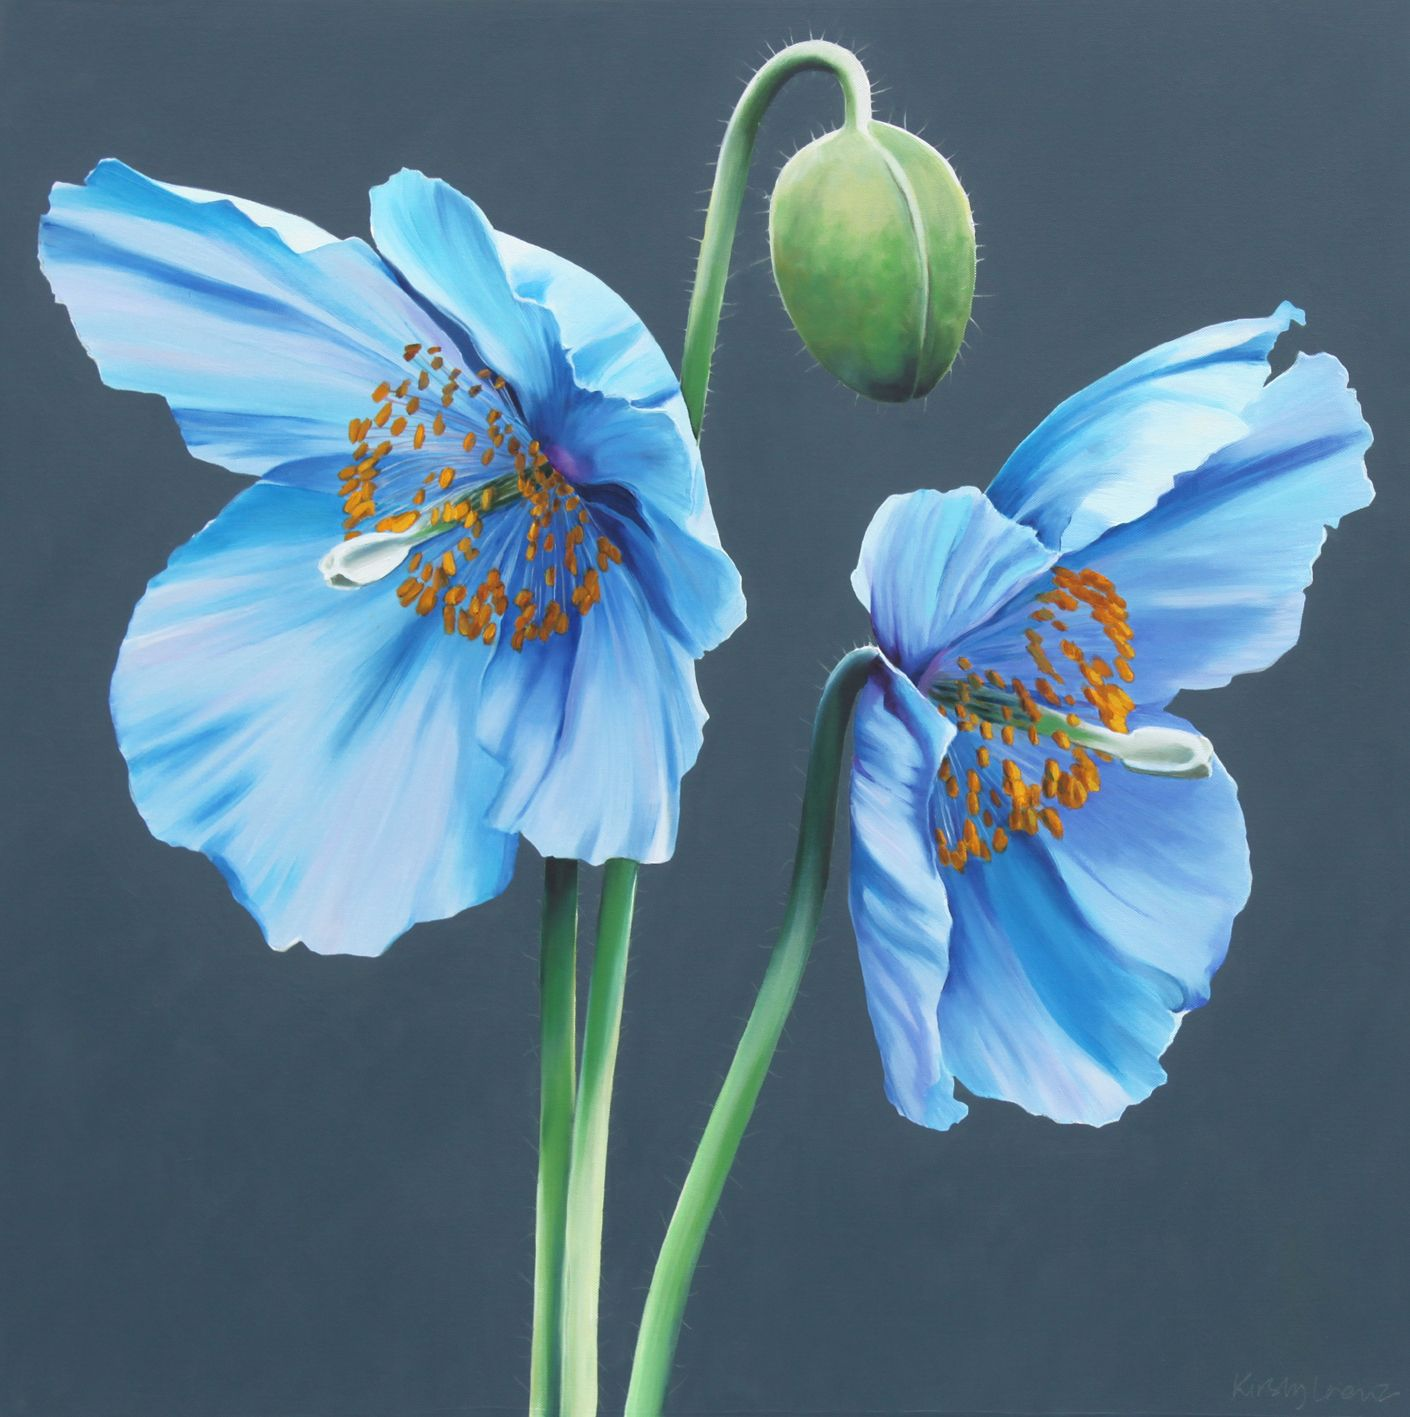 Httpkirstylorenzmedia2011blue20poppy20 20open httpkirstylorenzmedia2011blue20poppy20 20open20studiog mightylinksfo